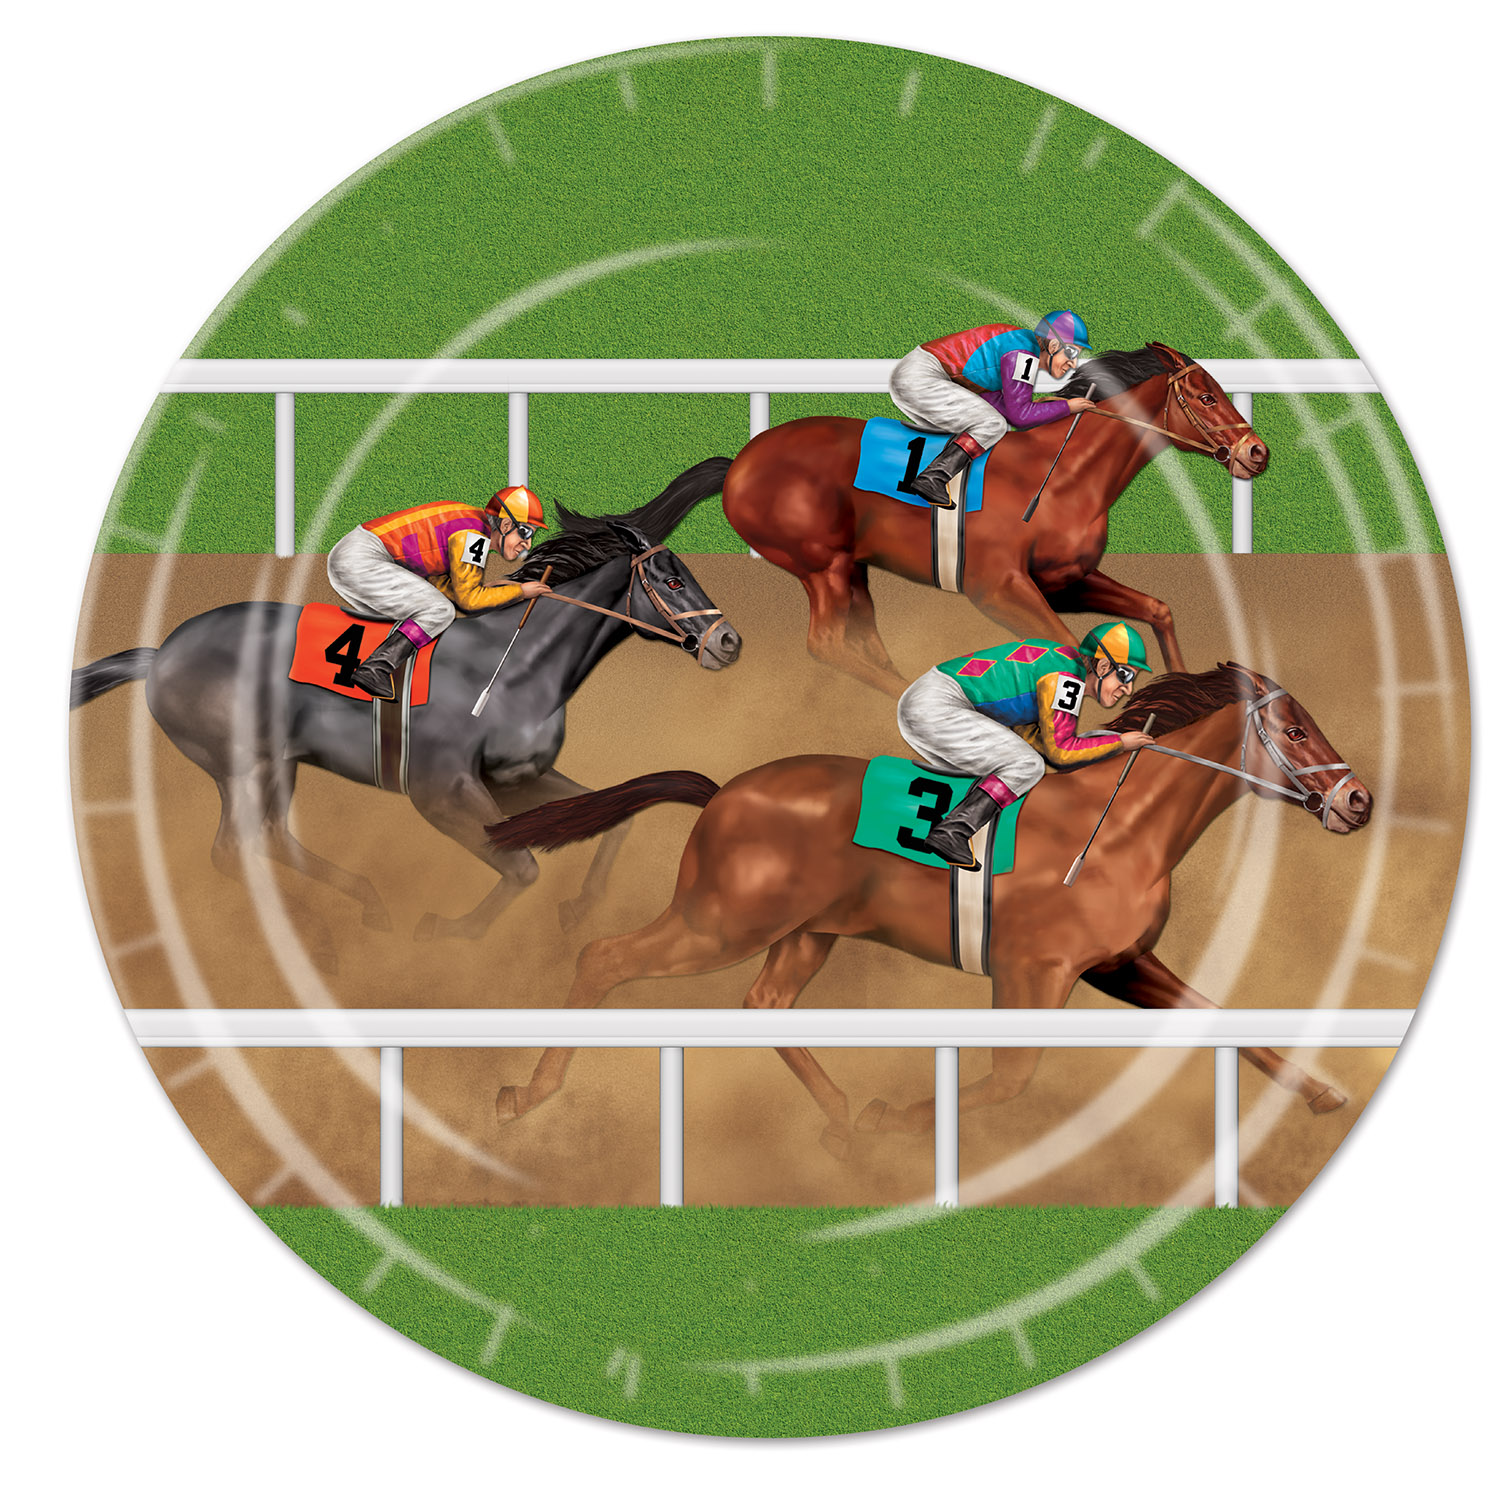 Horse Racing Plates (Pack of 96) Derby day, horse racing, sports, dinner, plates, tableware